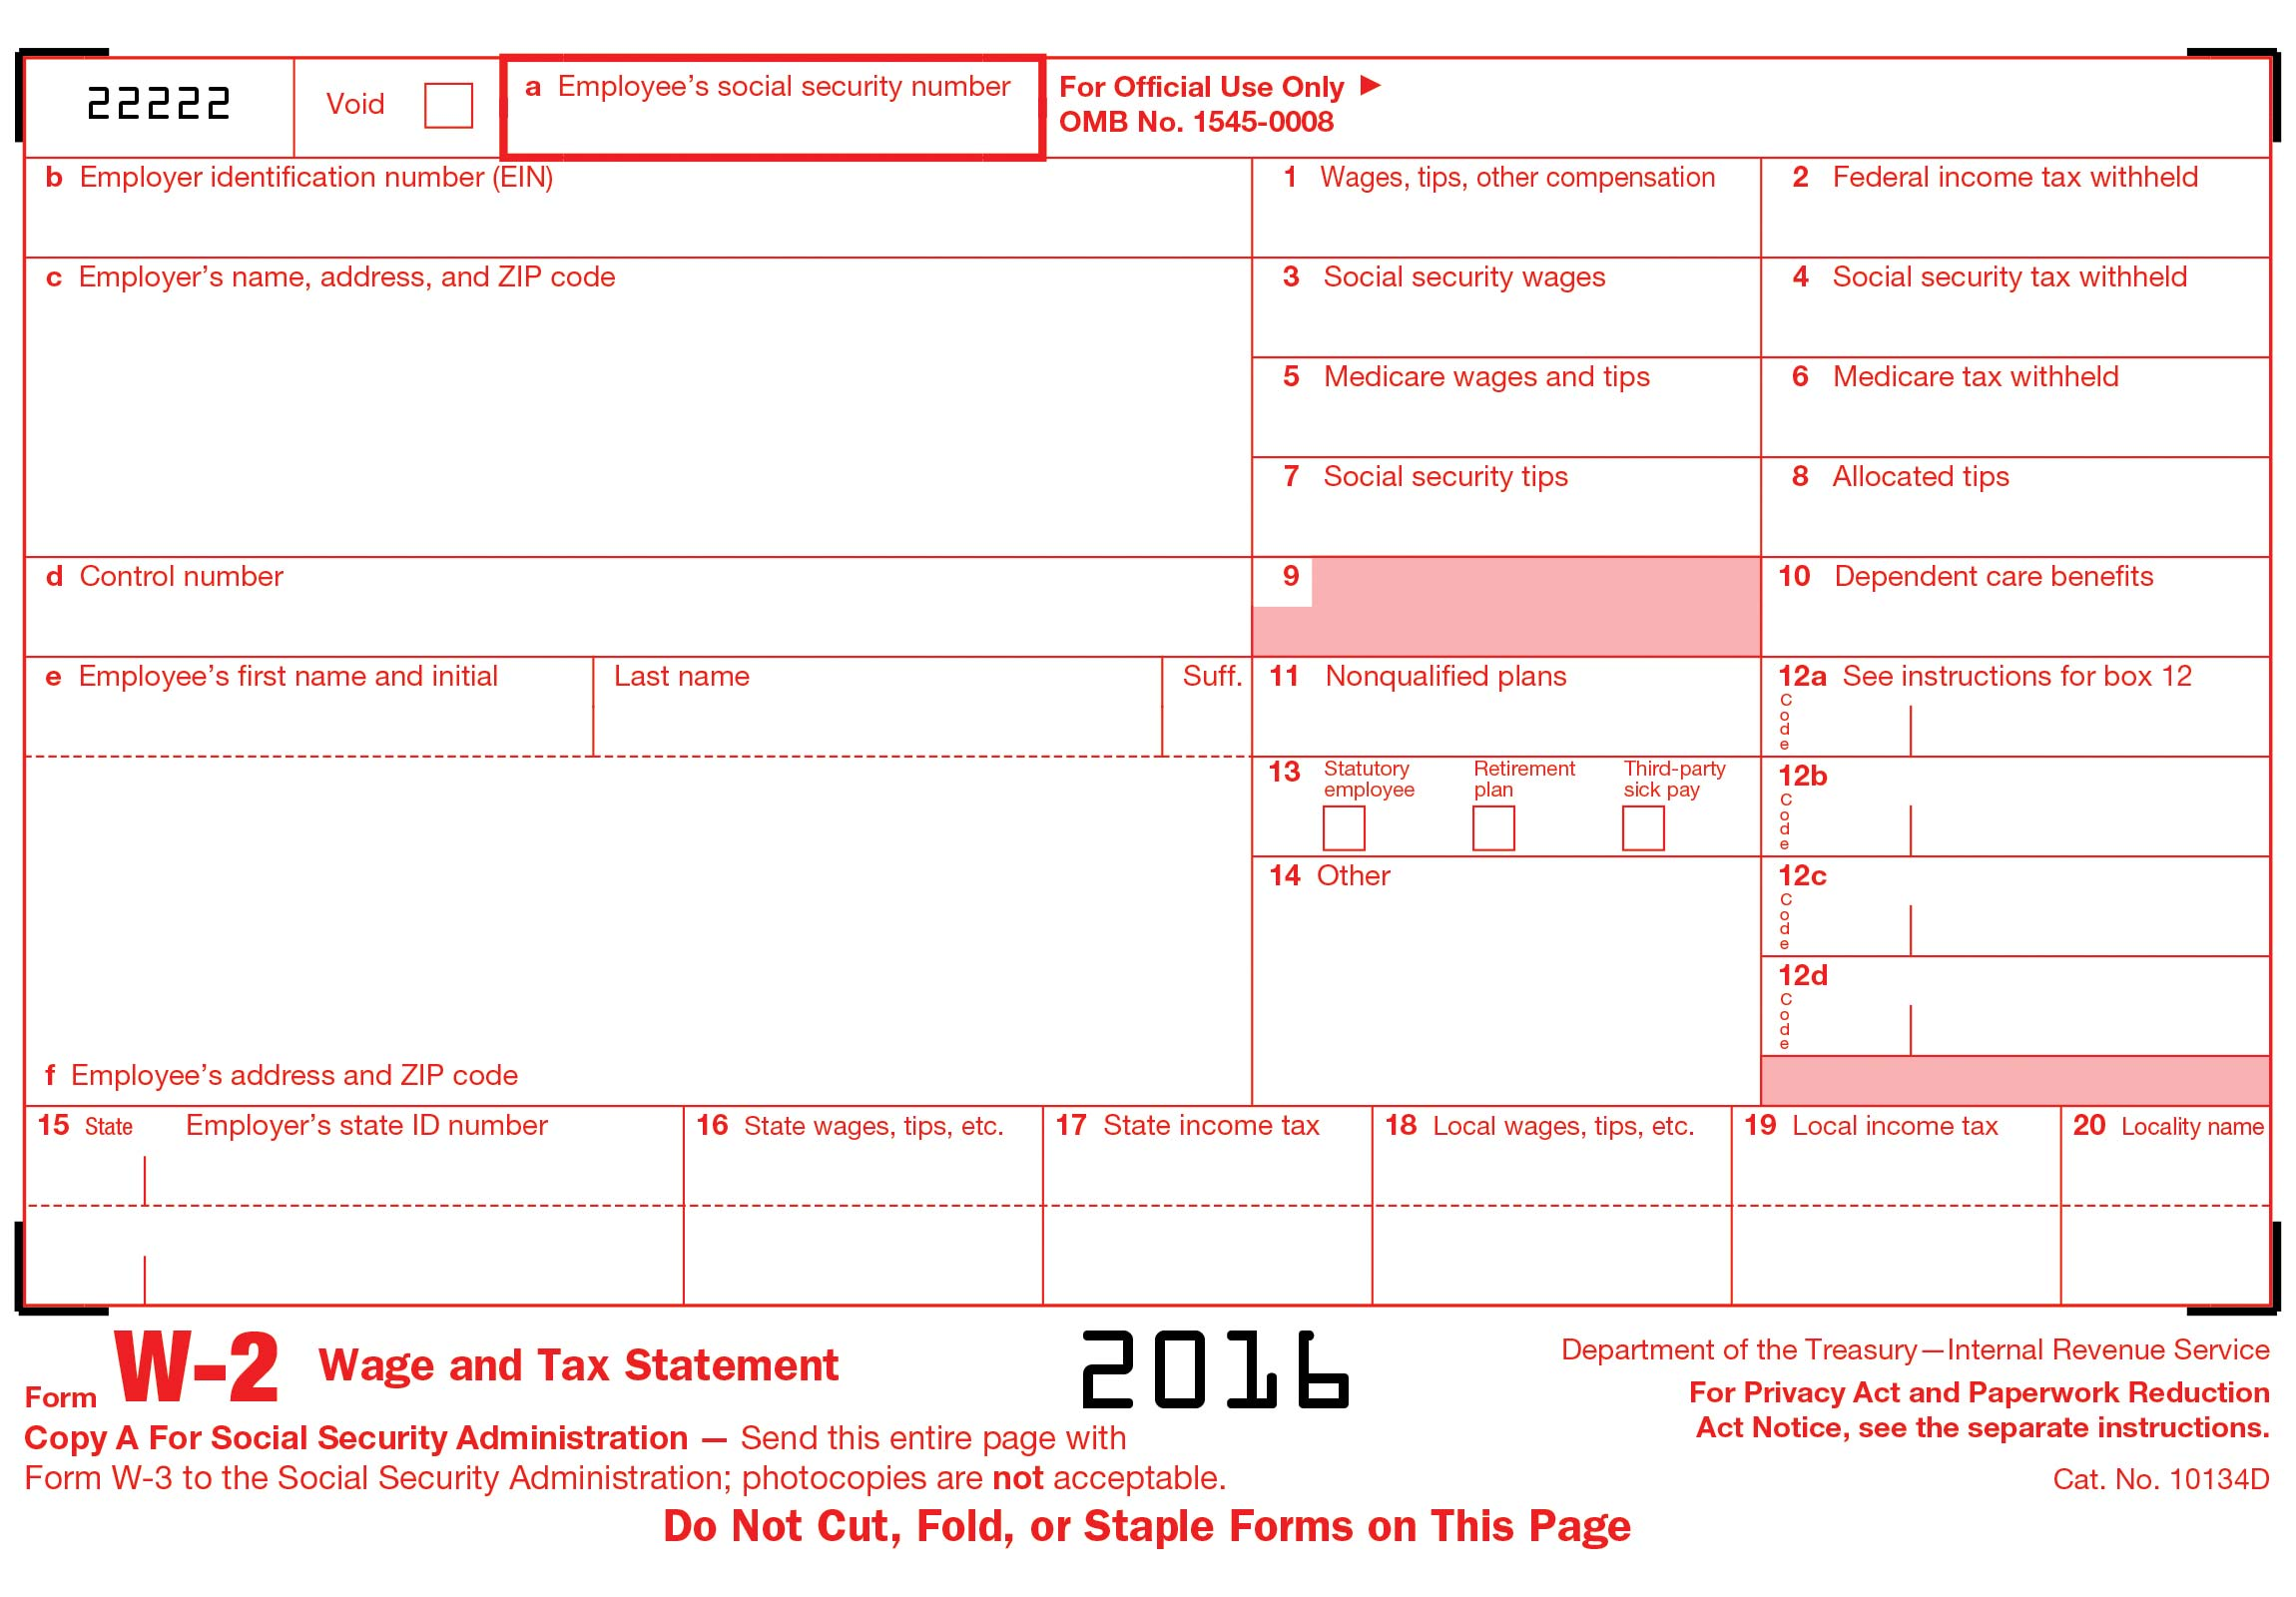 photograph relating to W2 Form Printable known as Totally free W2 sort on line W-2 Kind 2016 - Crank out printable W-2